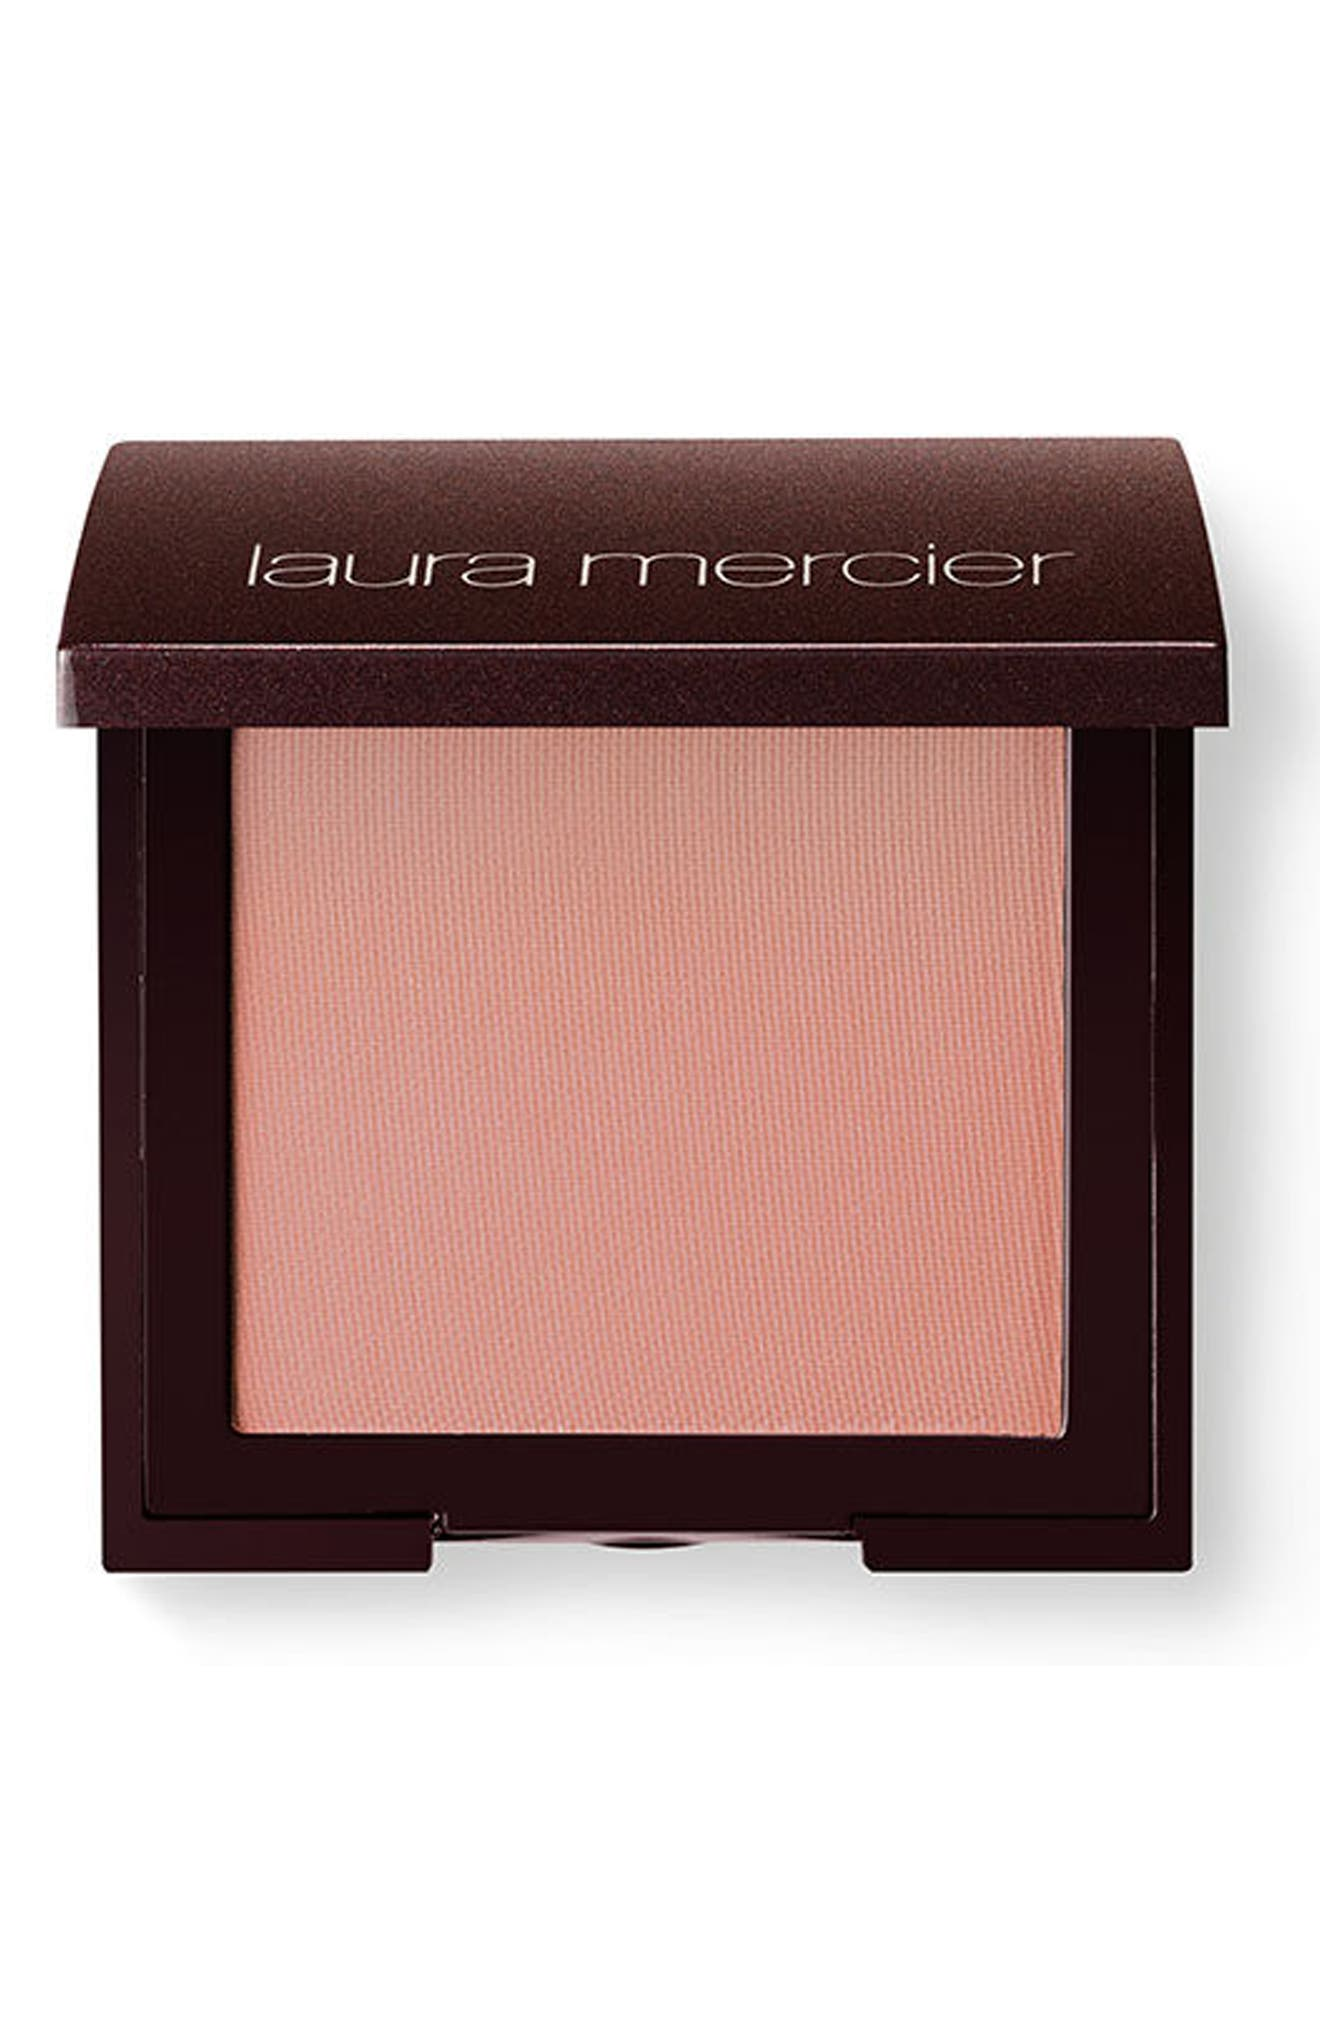 Laura Mercier 'Second Skin' Cheek Color